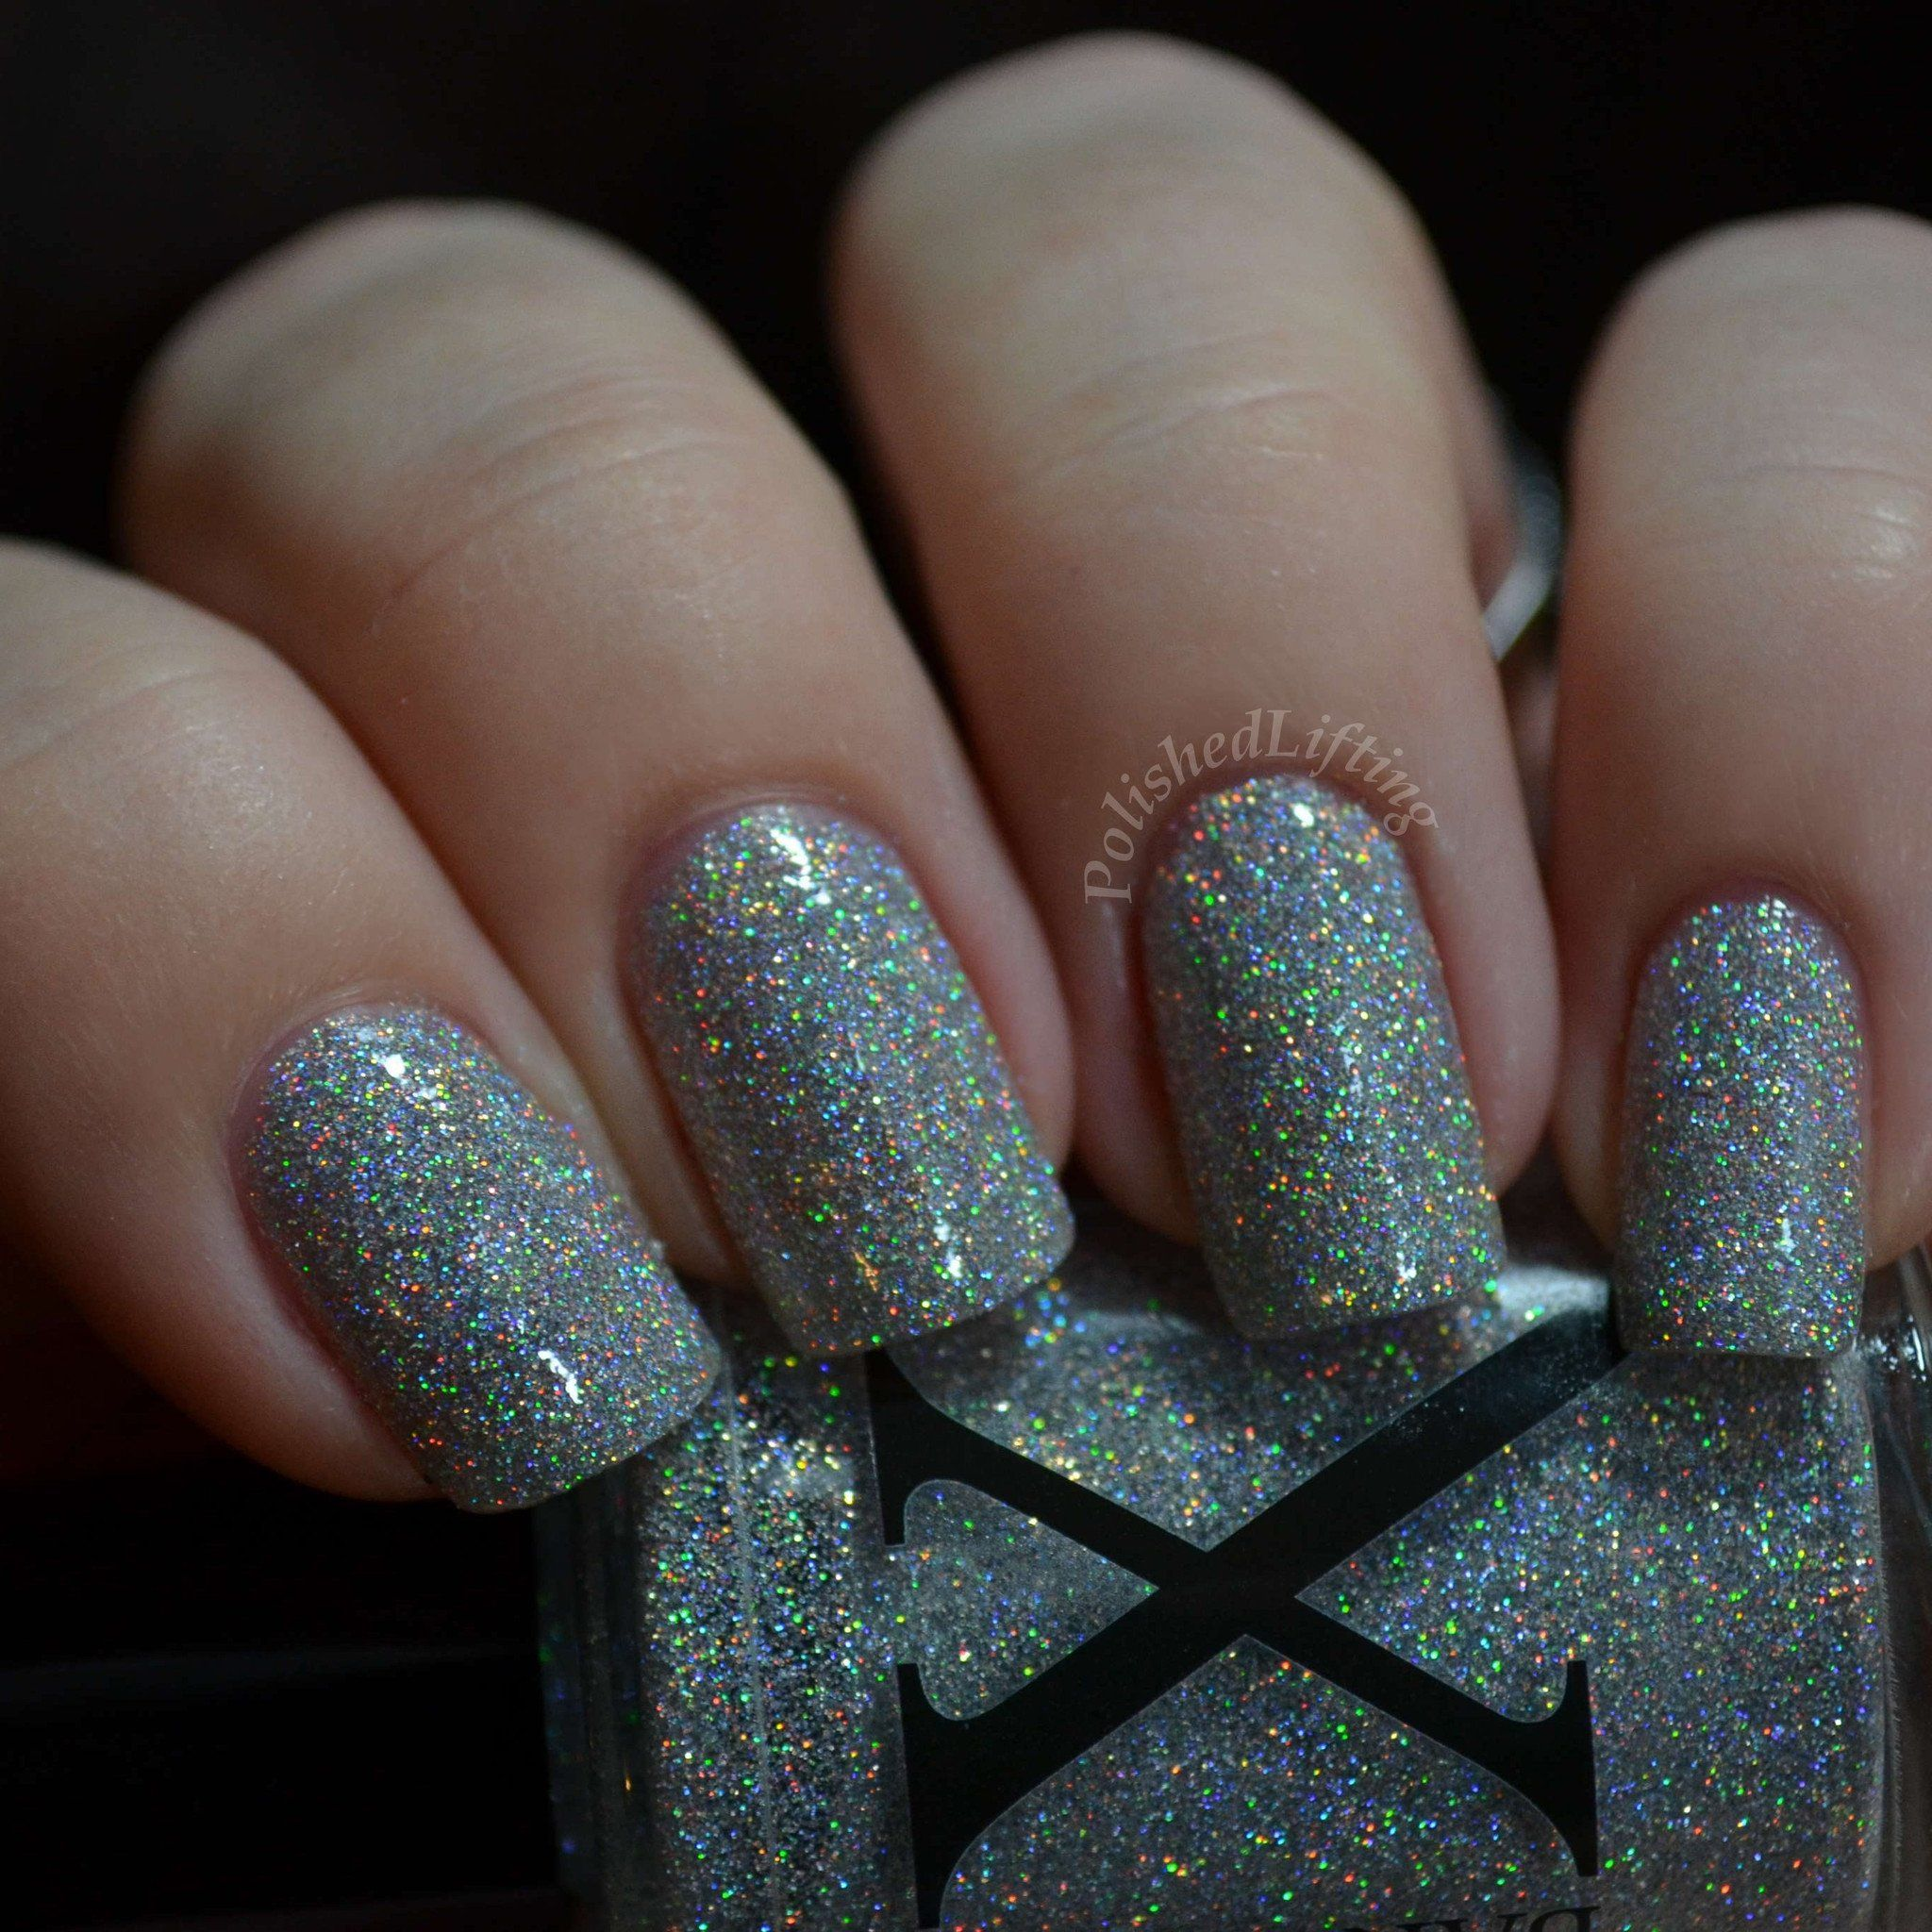 Silver Snow Surfer Is A Textured Holographic Nail Polish It Reminds Me Of Fresh Powdery As The Light Makes Snowflakes Sparkle